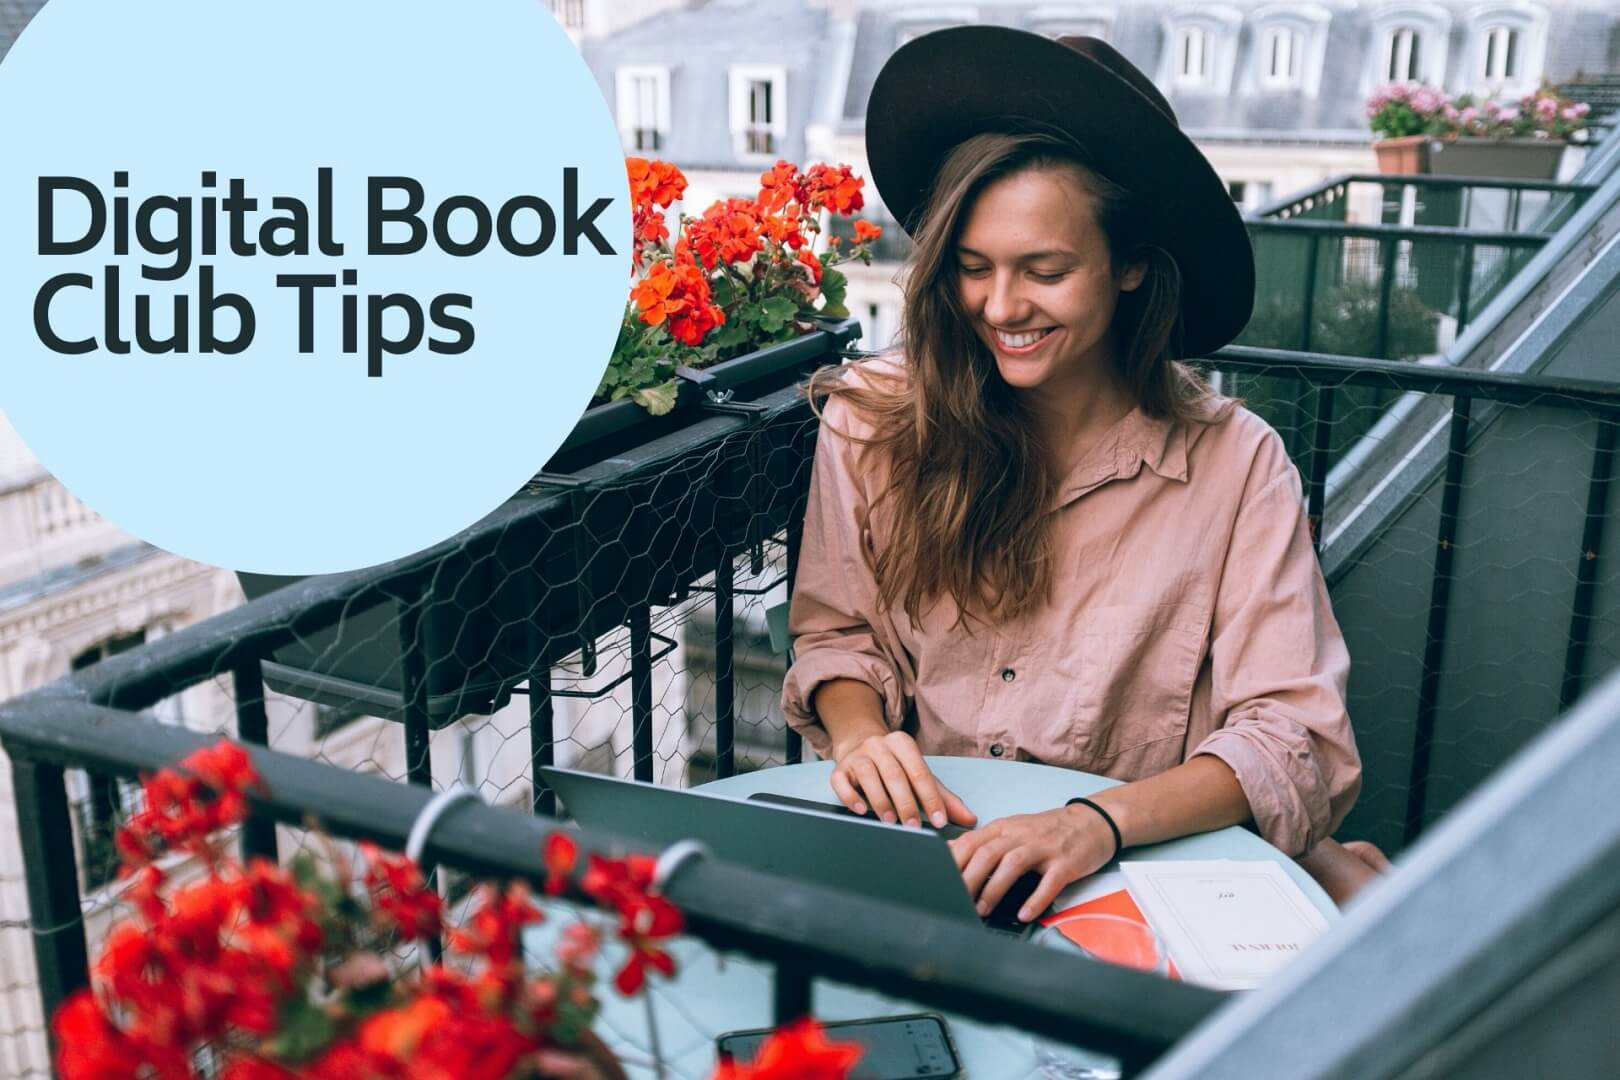 digital book club tips - book club chat